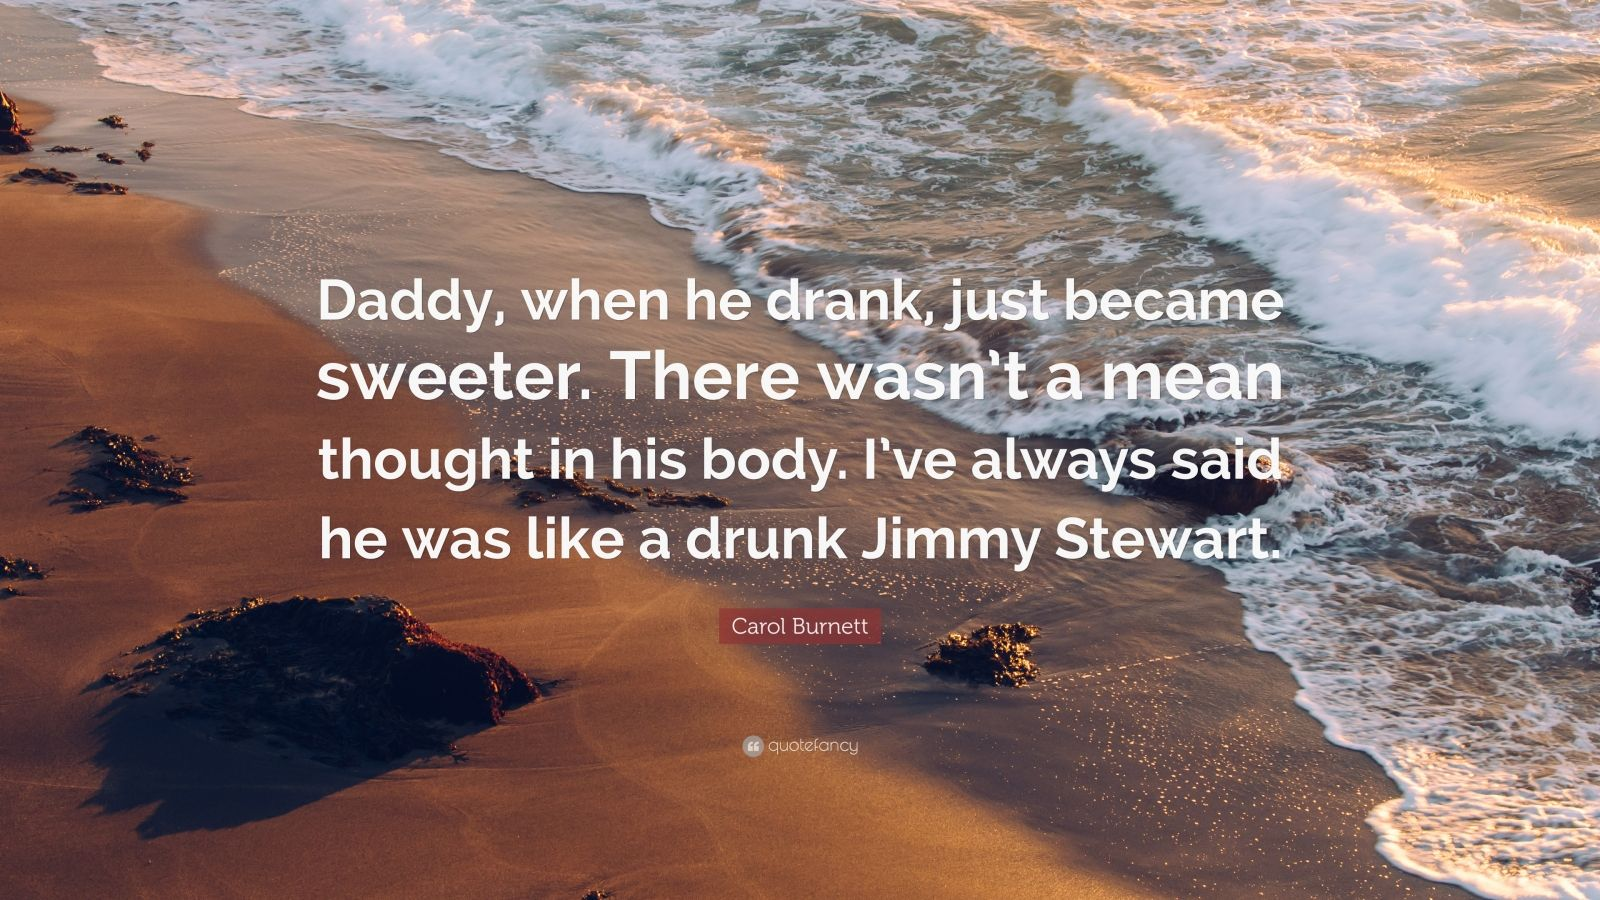 """Carol Burnett Quote: """"Daddy, when he drank, just became sweeter. There wasn't a mean thought in his body. I've always said he was like a drunk Jimmy Stewart."""""""